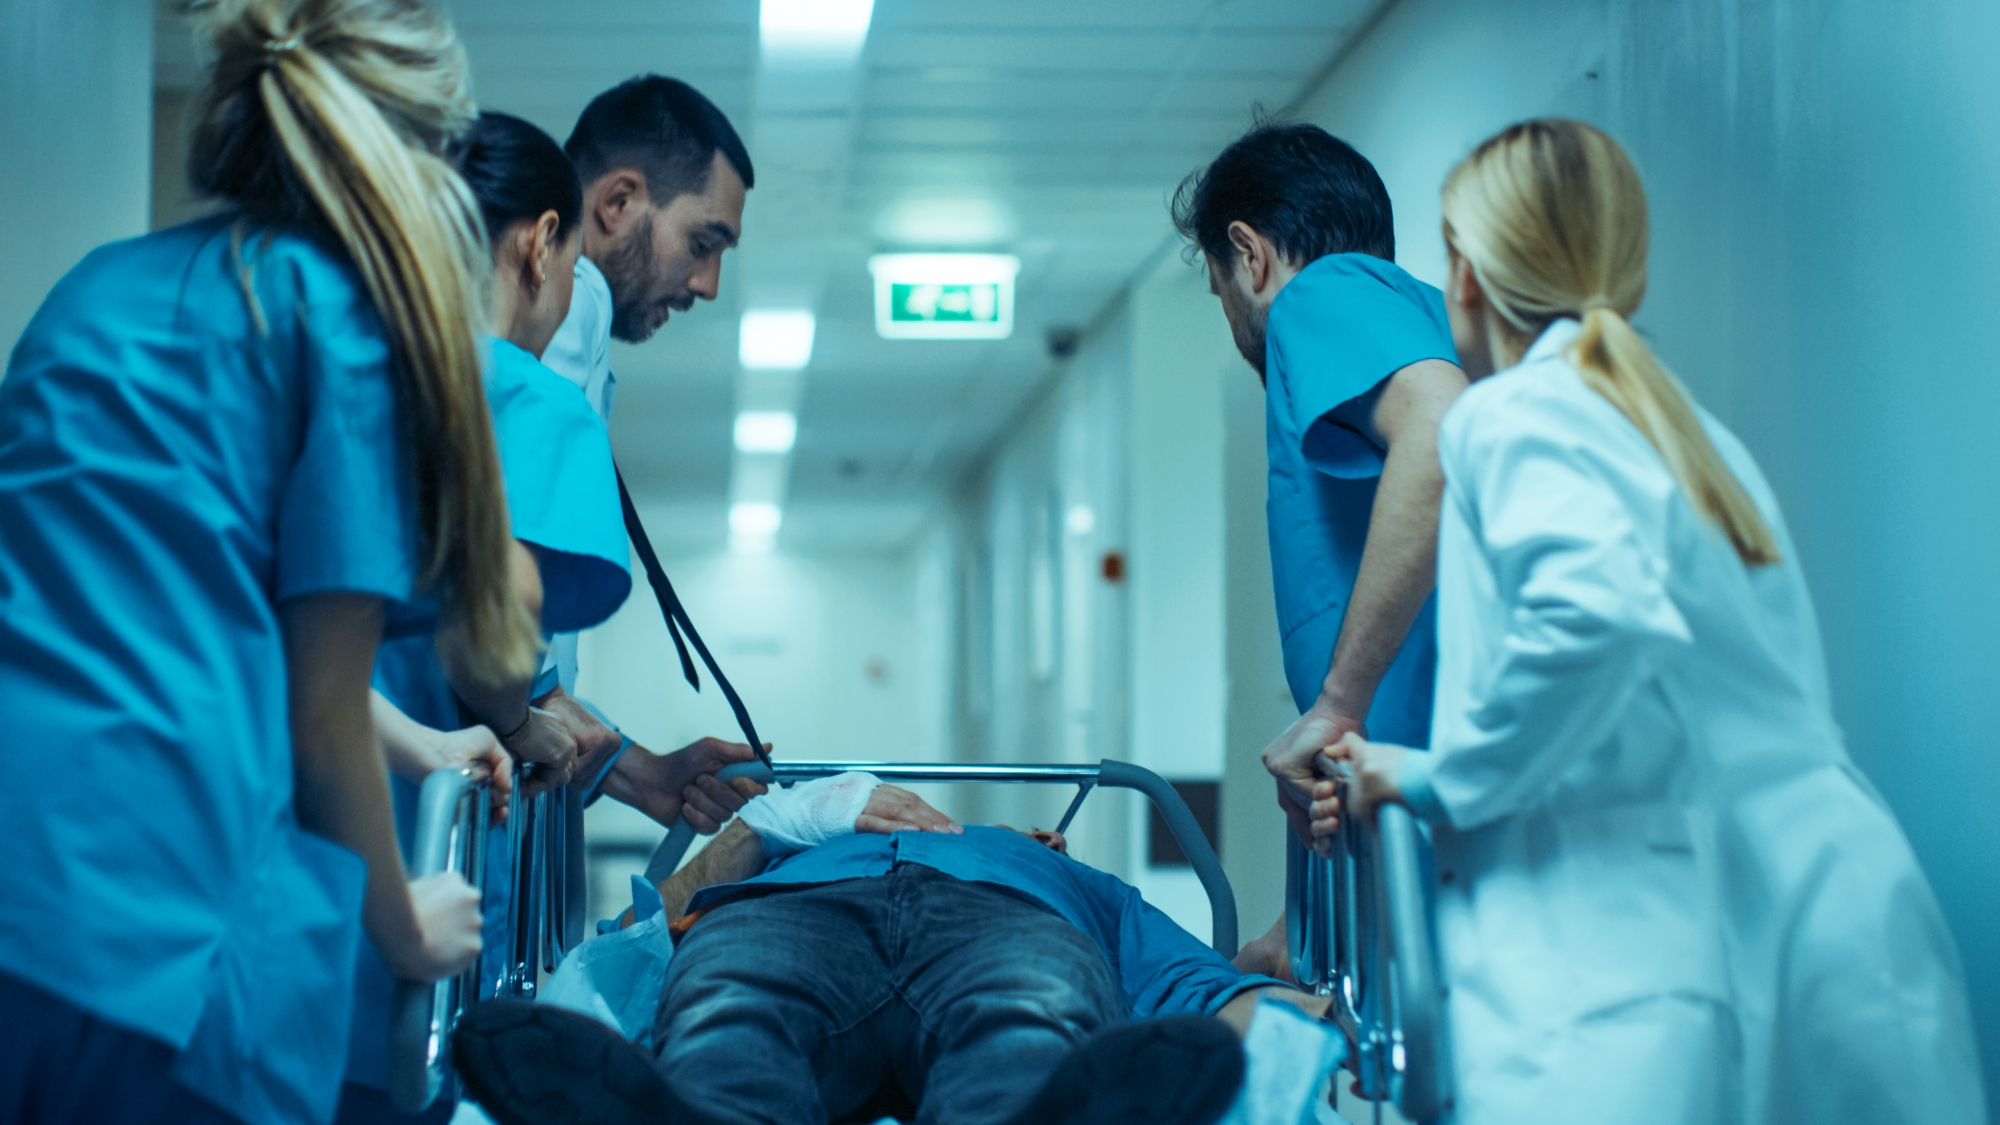 Hospital staff rushing gurney down hallway